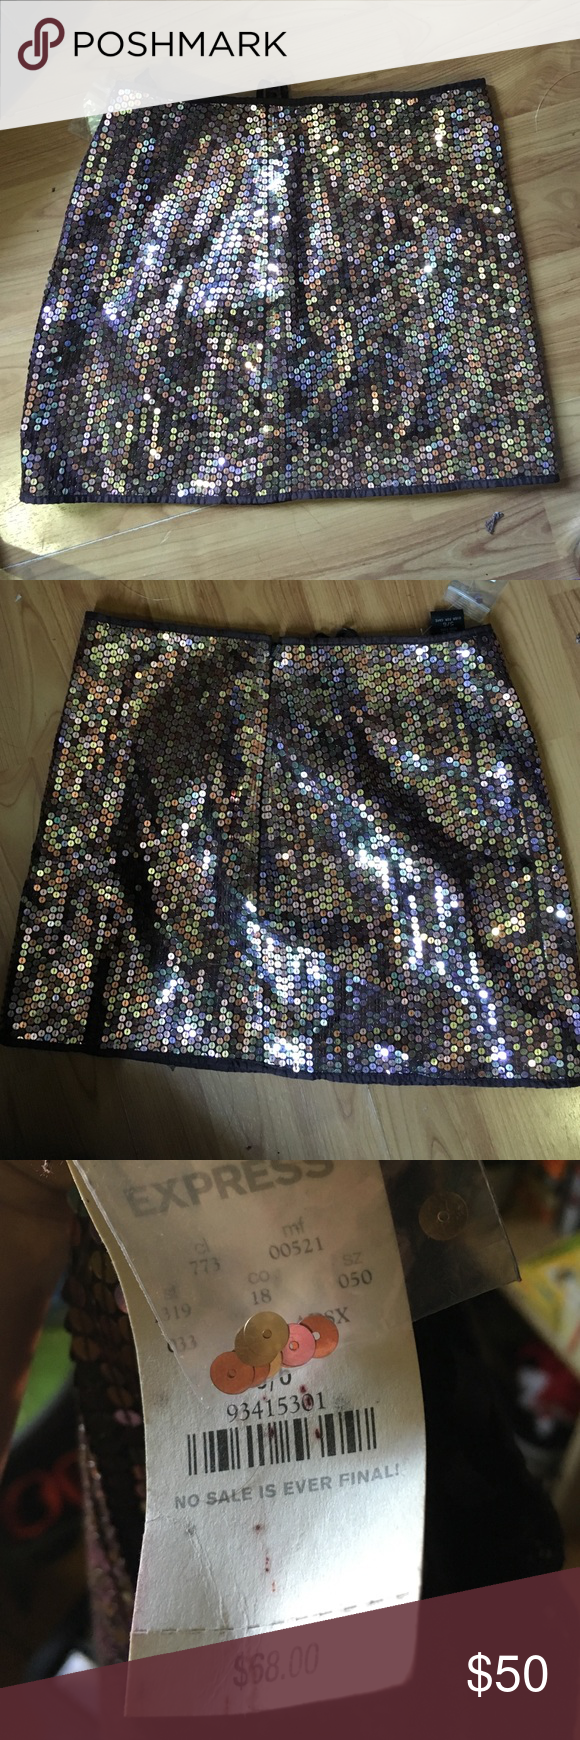 NWT express brown sequin skirt NWT. I'm great condition. Size 5/6 Express Skirts Mini